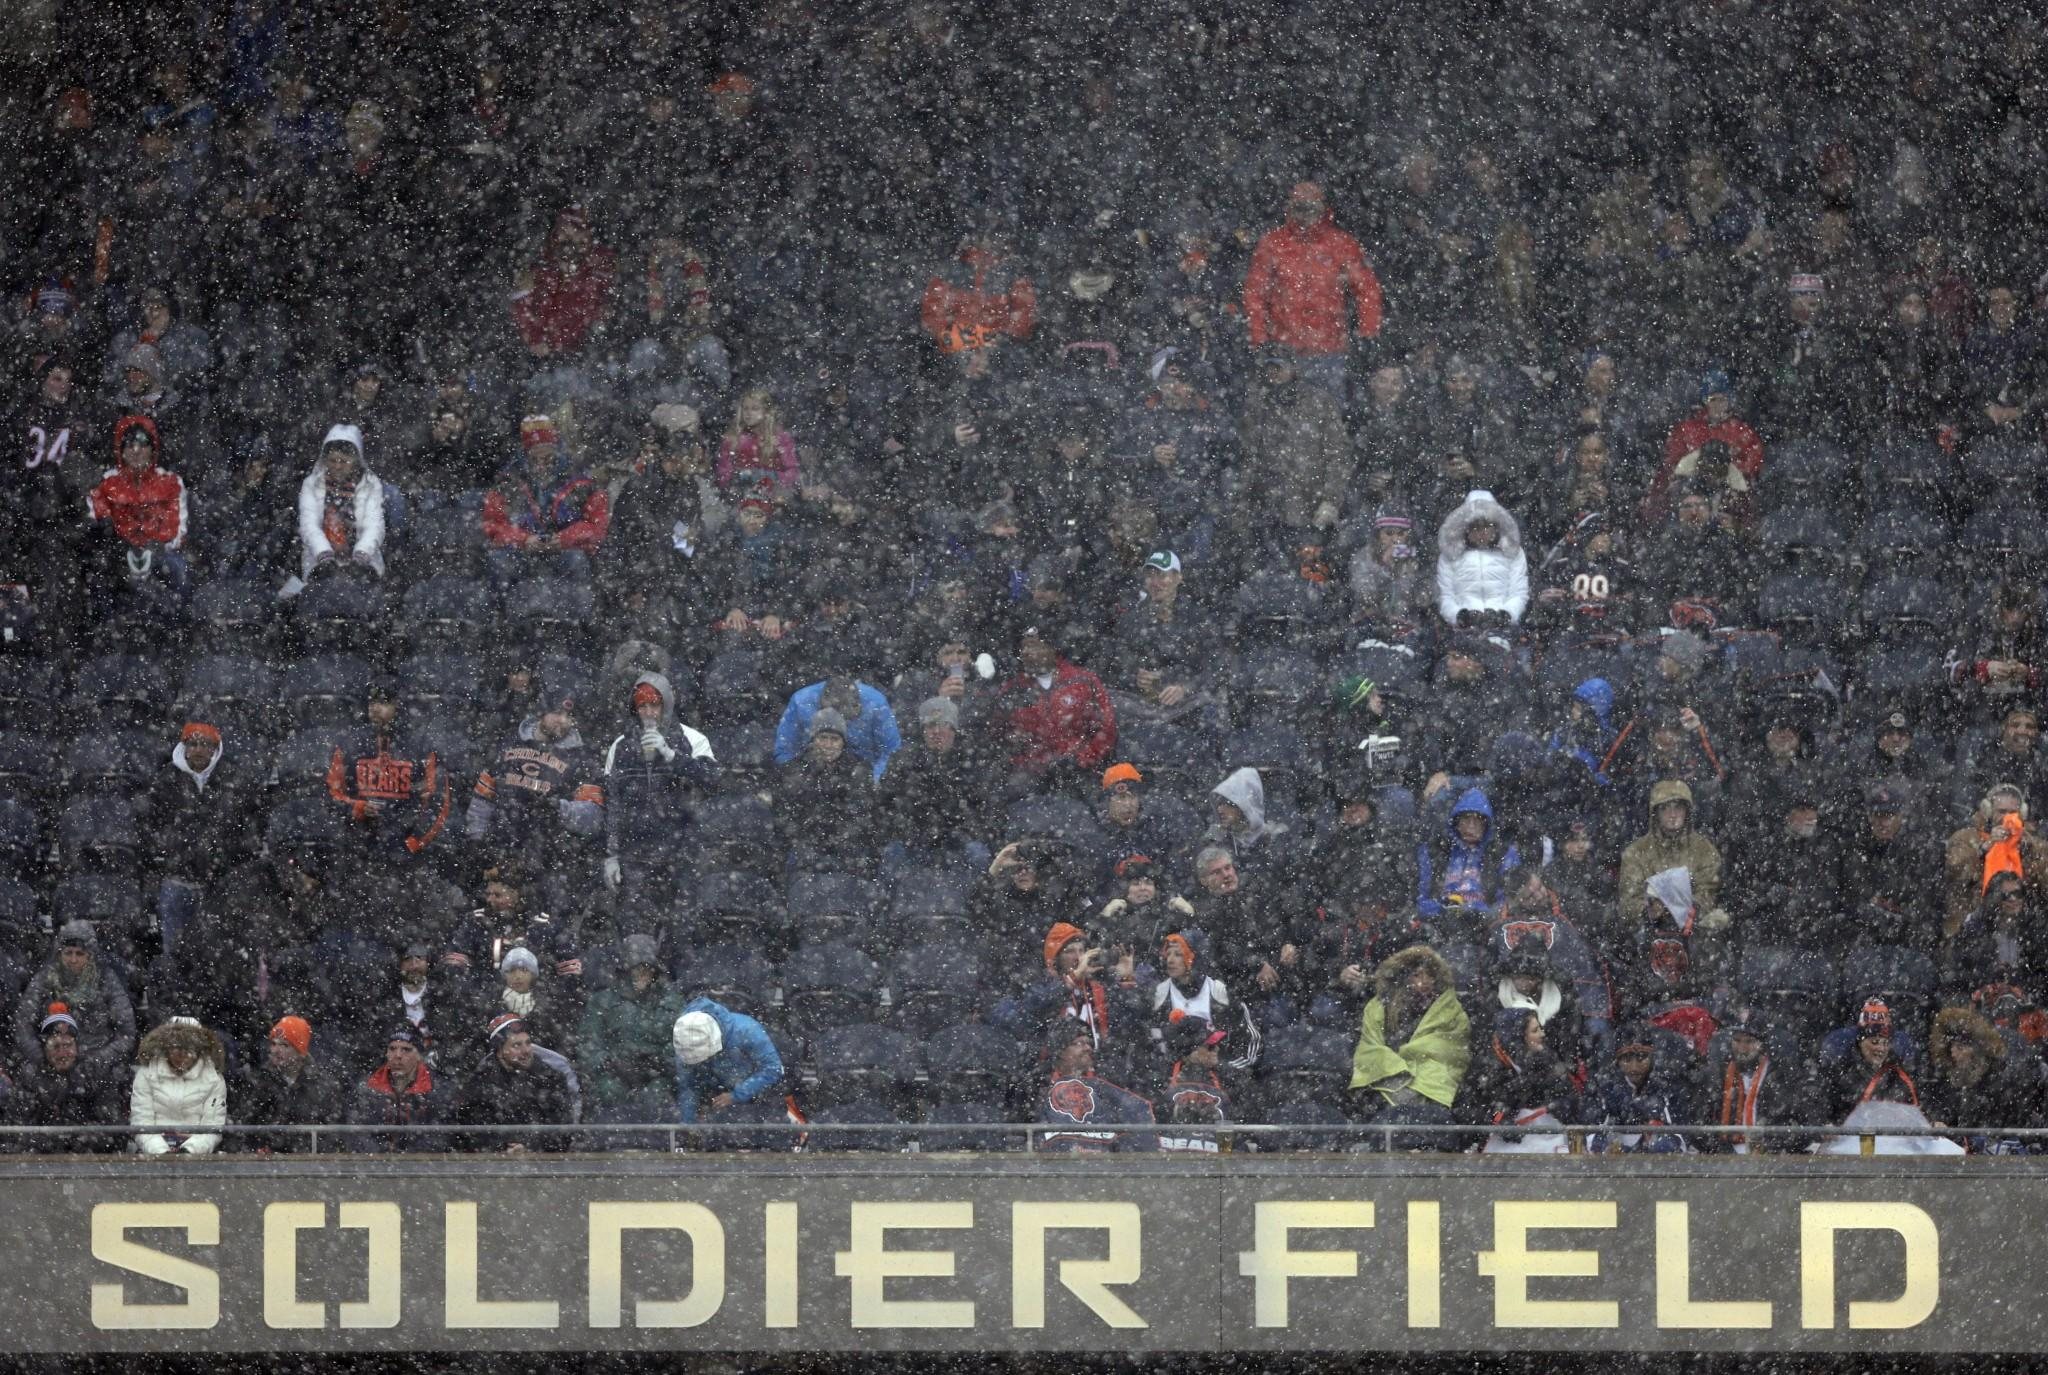 The snowy touchdown celebration that might have cost the 49ers a touchdown